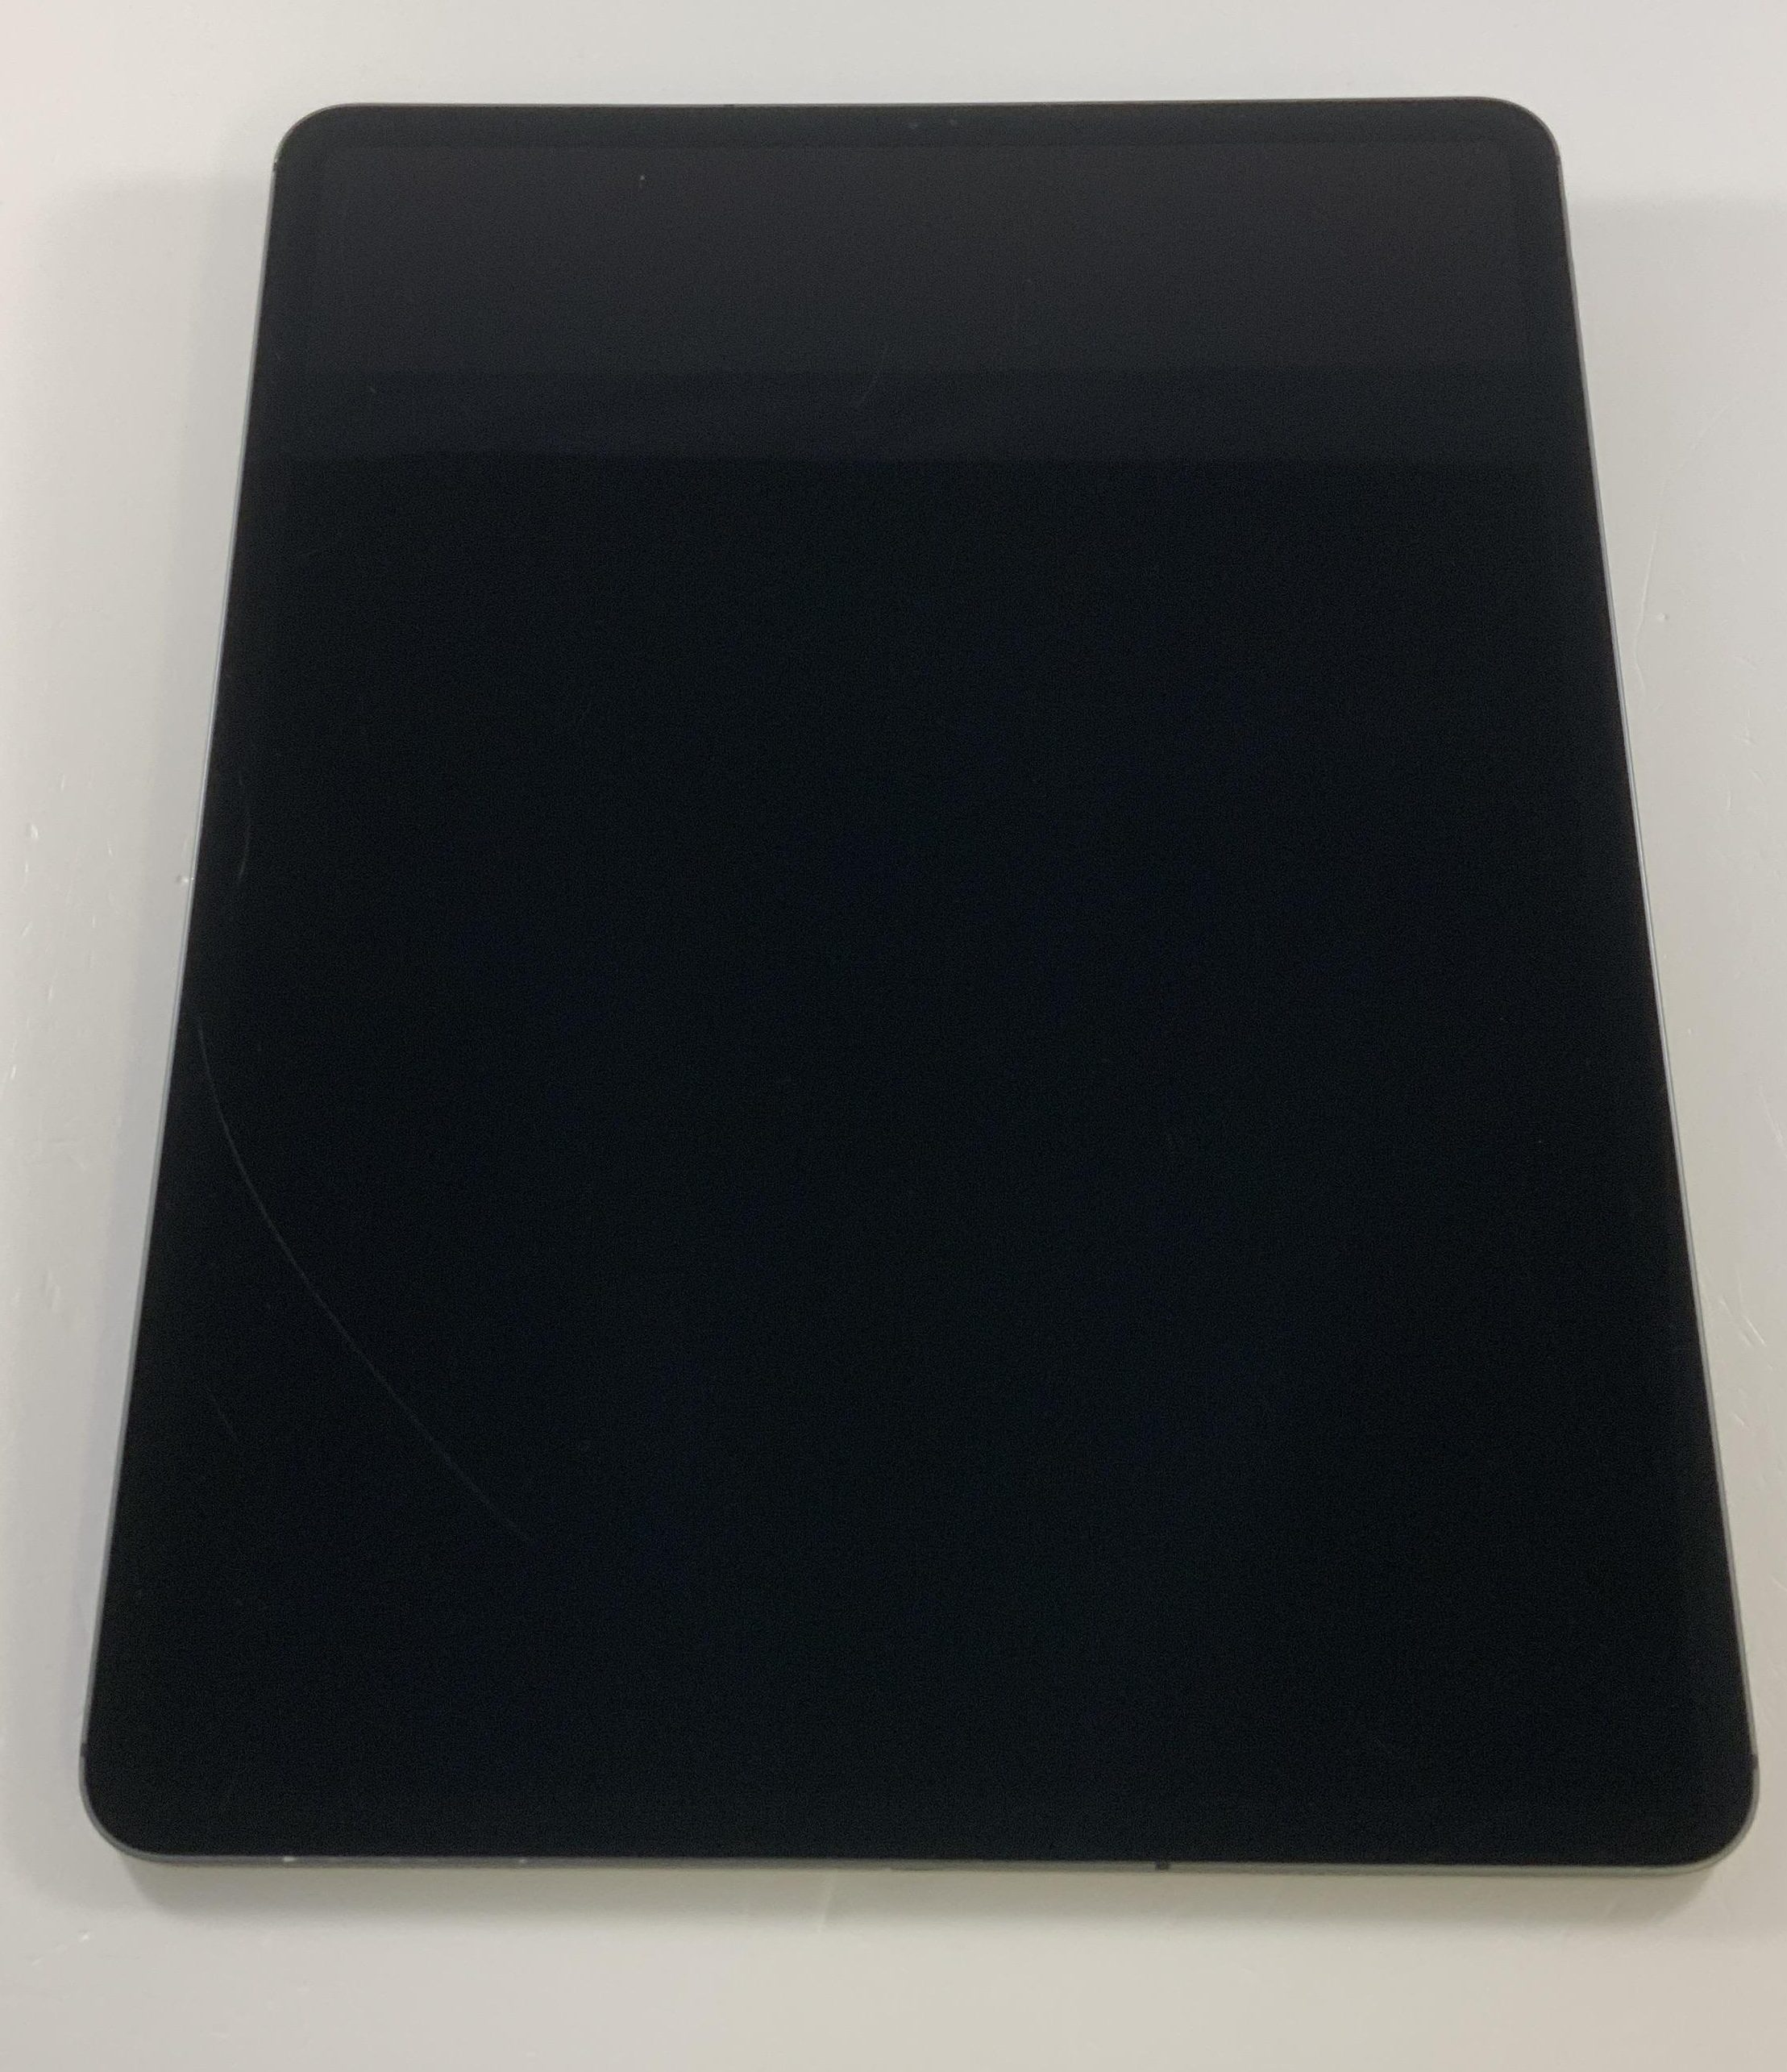 "iPad Pro 12.9"" Wi-Fi + Cellular (4th Gen) 256GB, 256GB, Space Gray, immagine 1"